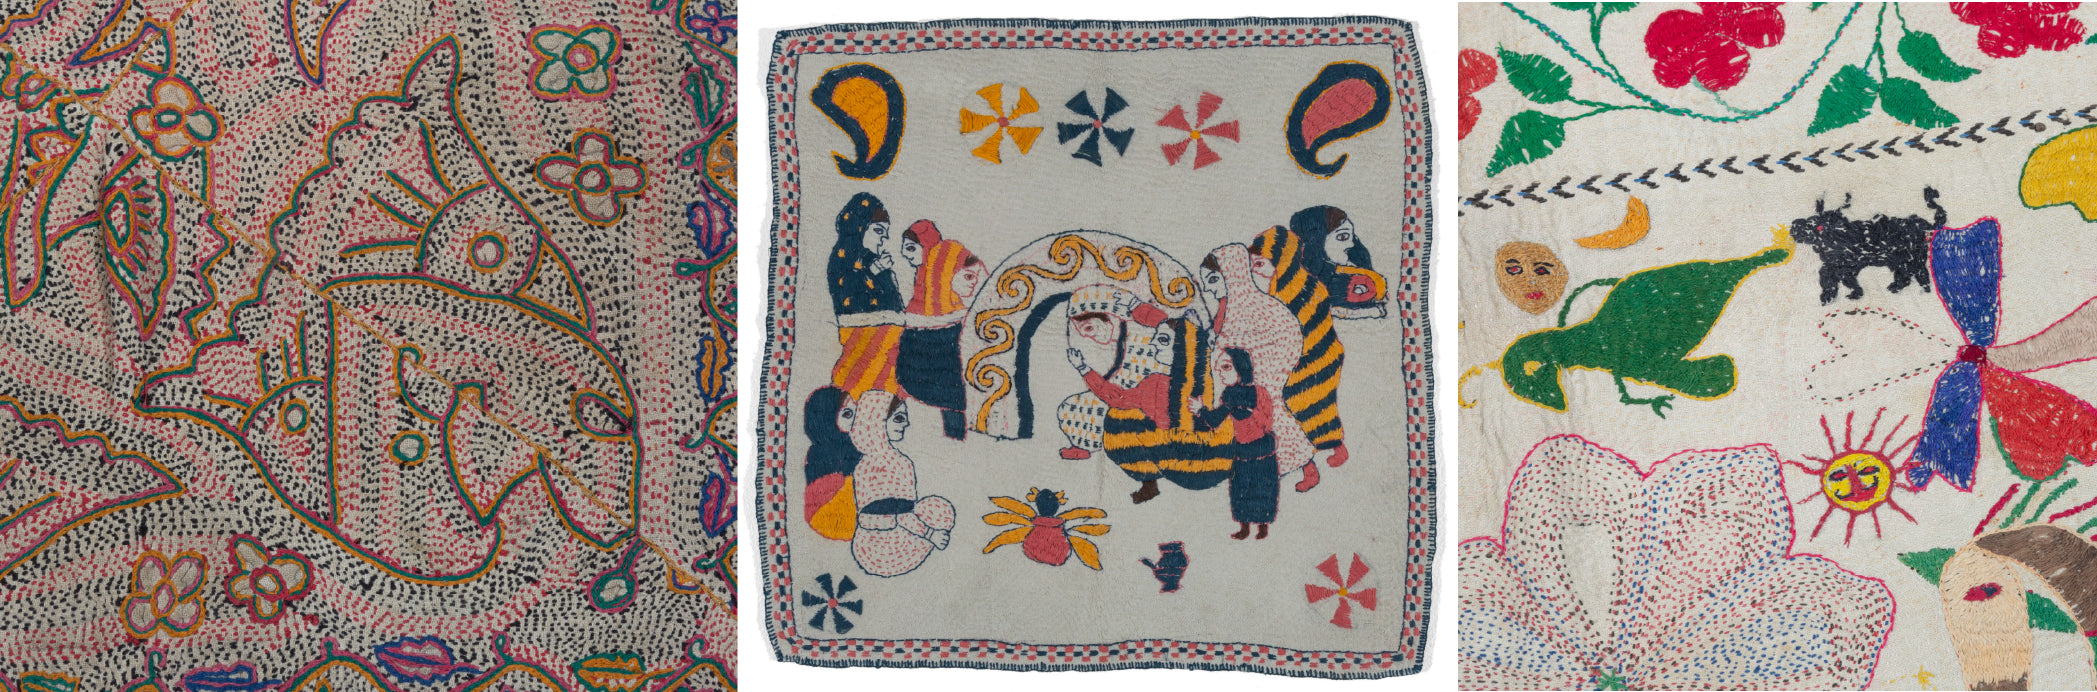 Three images of Bangladeshi Nakshi Kantha textiles